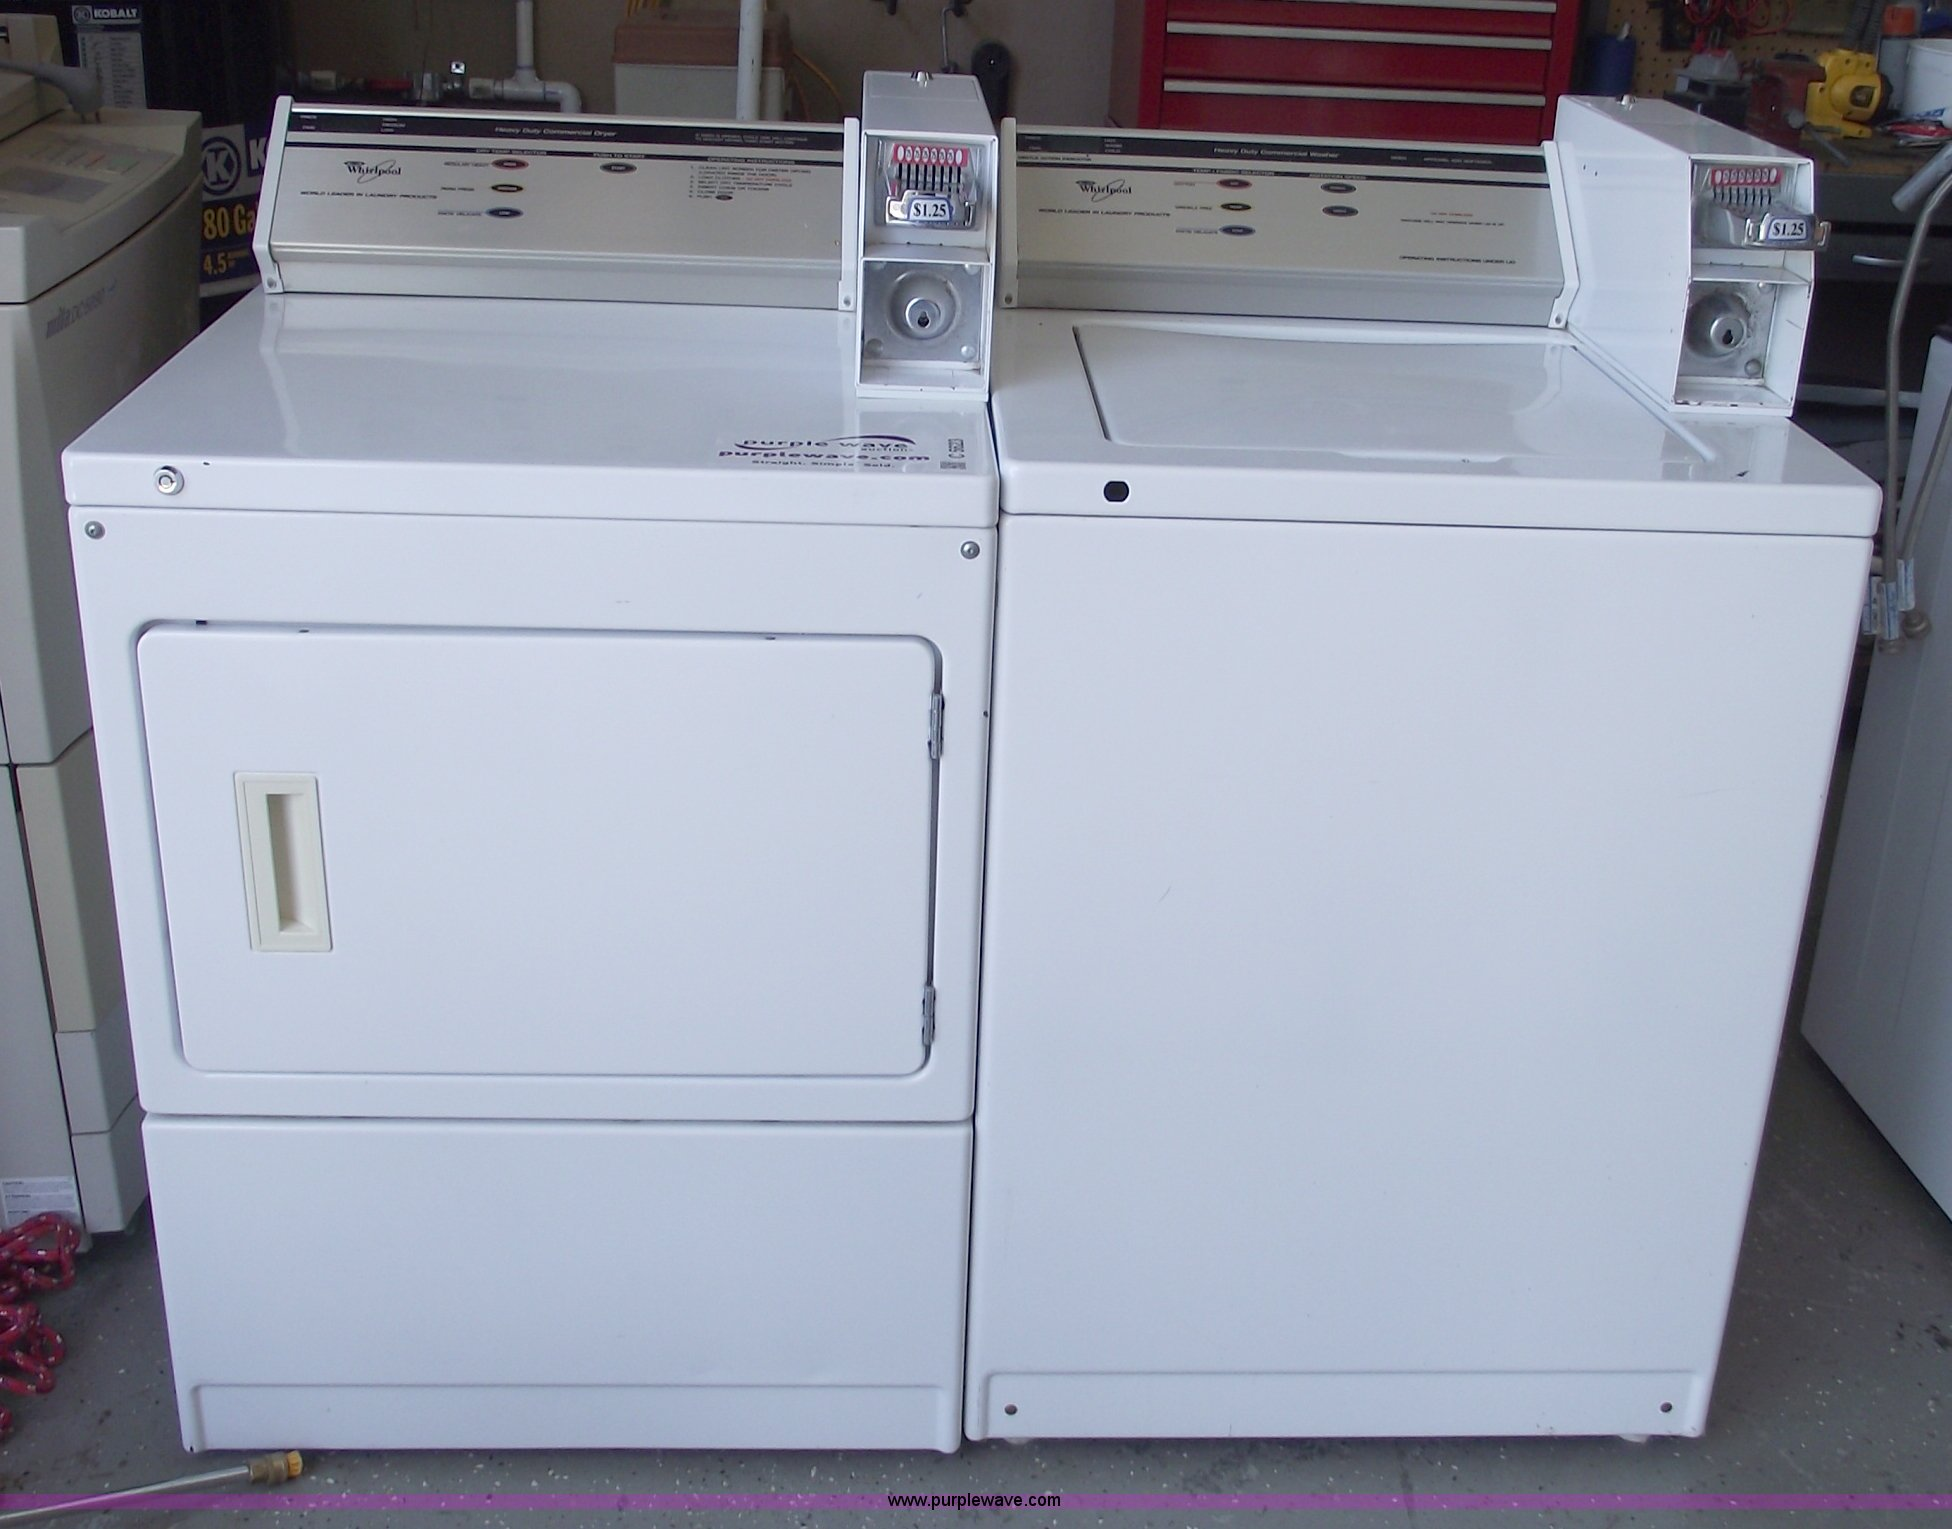 Whirlpool Commercial Coin Operated Washer And Dryer Item